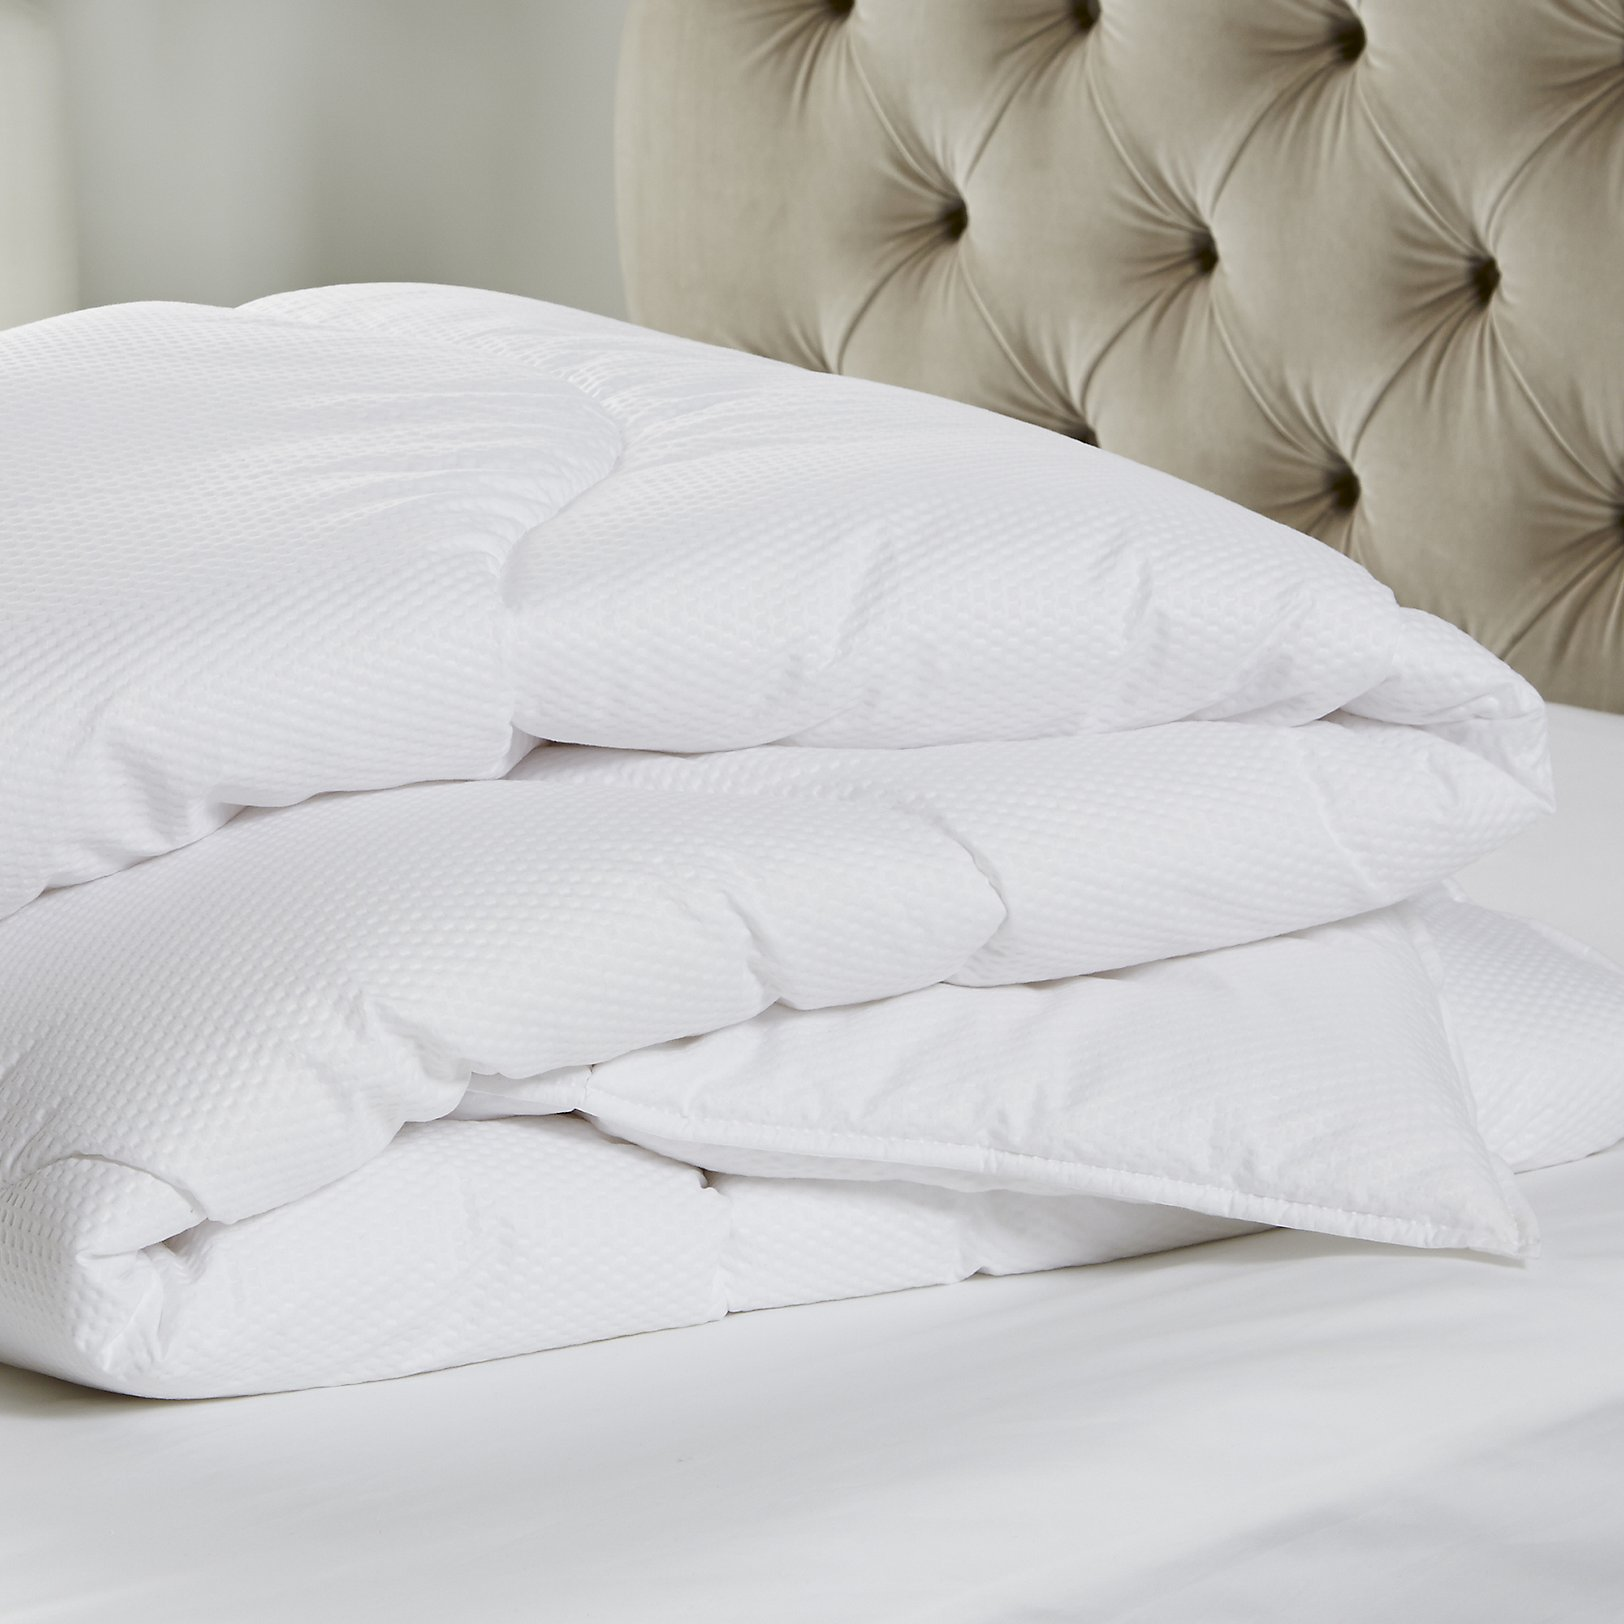 Super Soft Ultra Wash Duvet 7 5 Tog